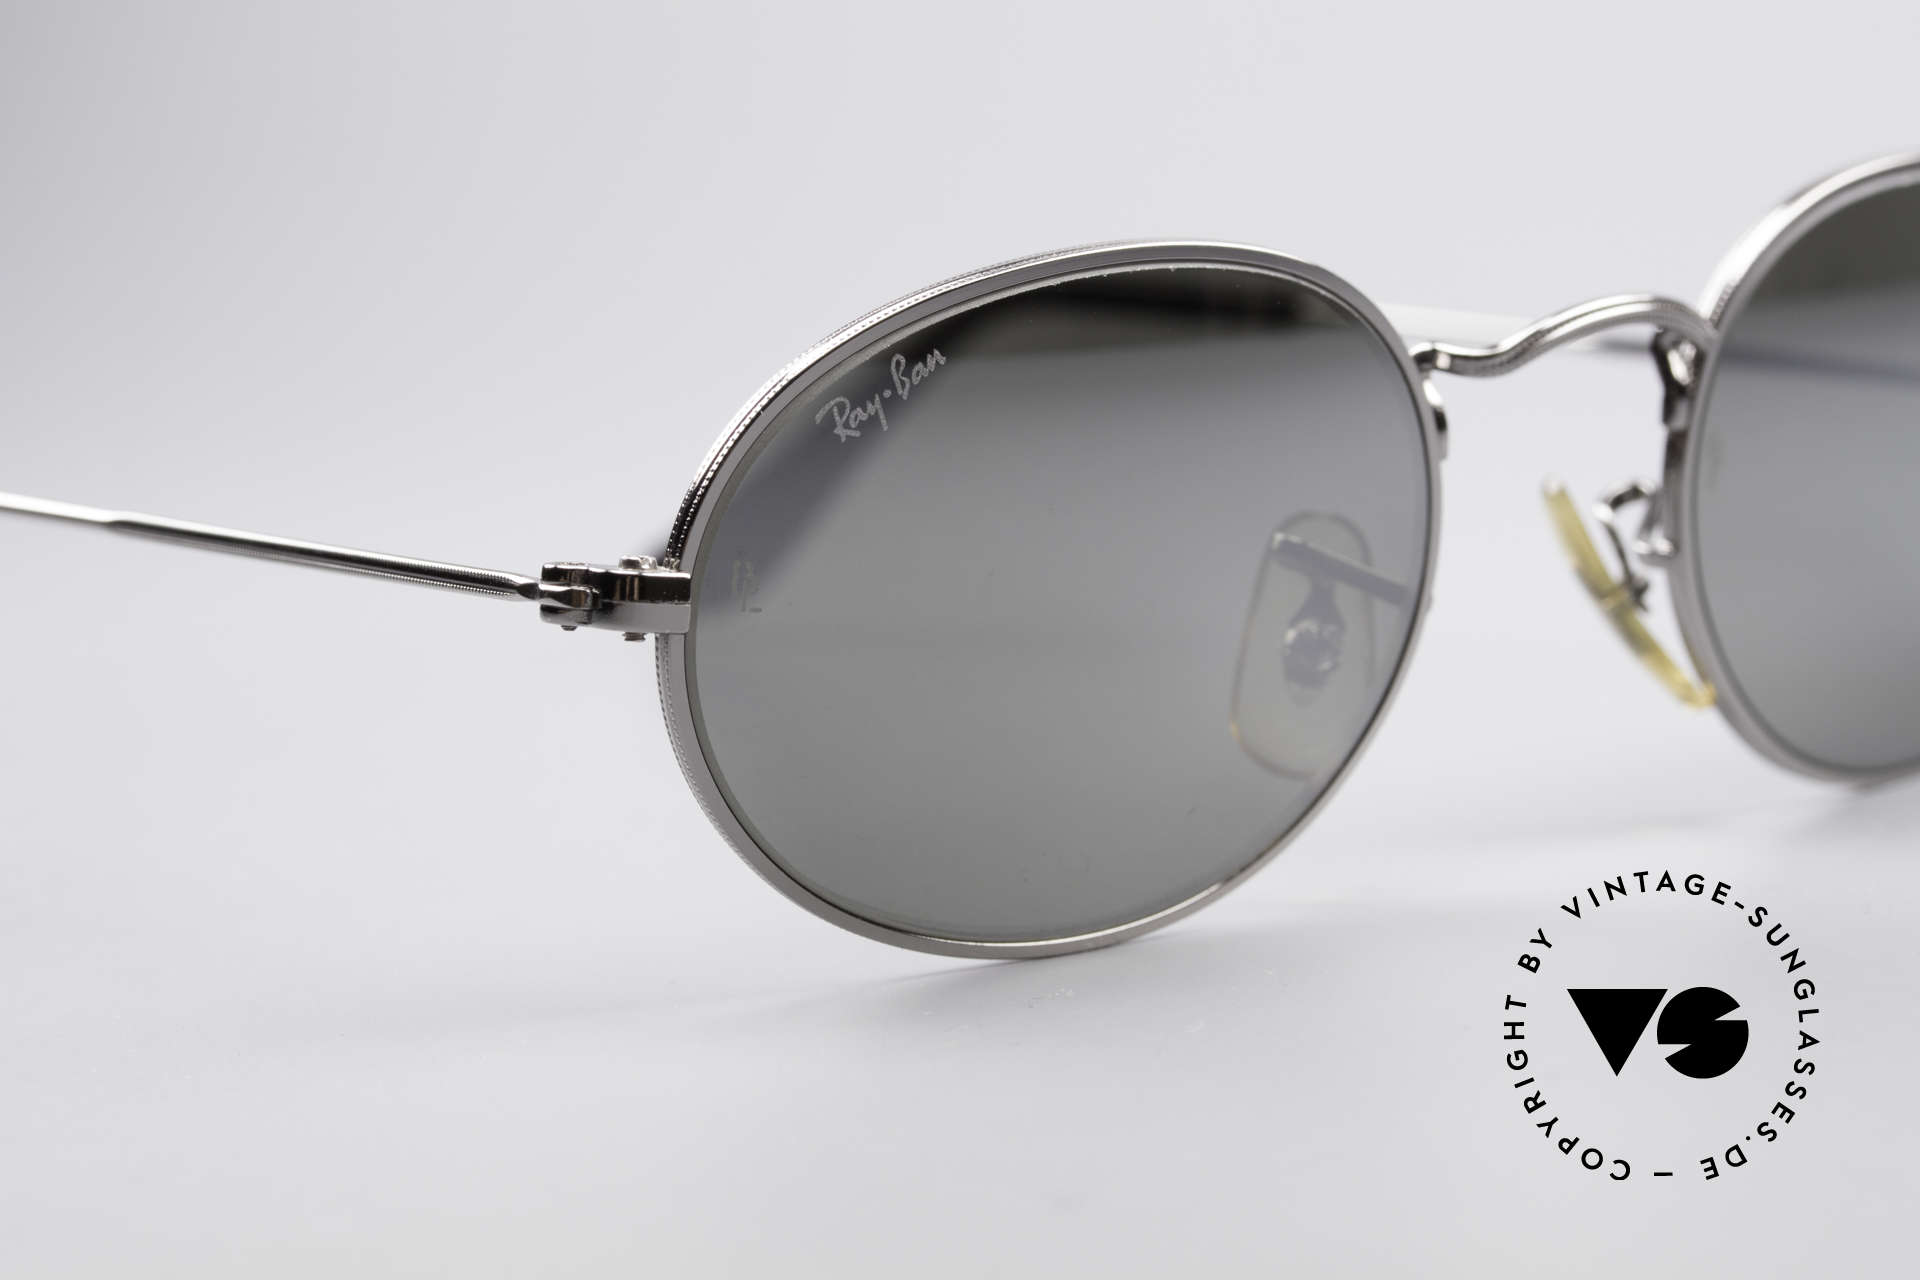 Ray Ban Classic Style I Mirrored B&L USA Sunglasses, unworn (like all our vintage RAY-BAN eyewear), Made for Men and Women